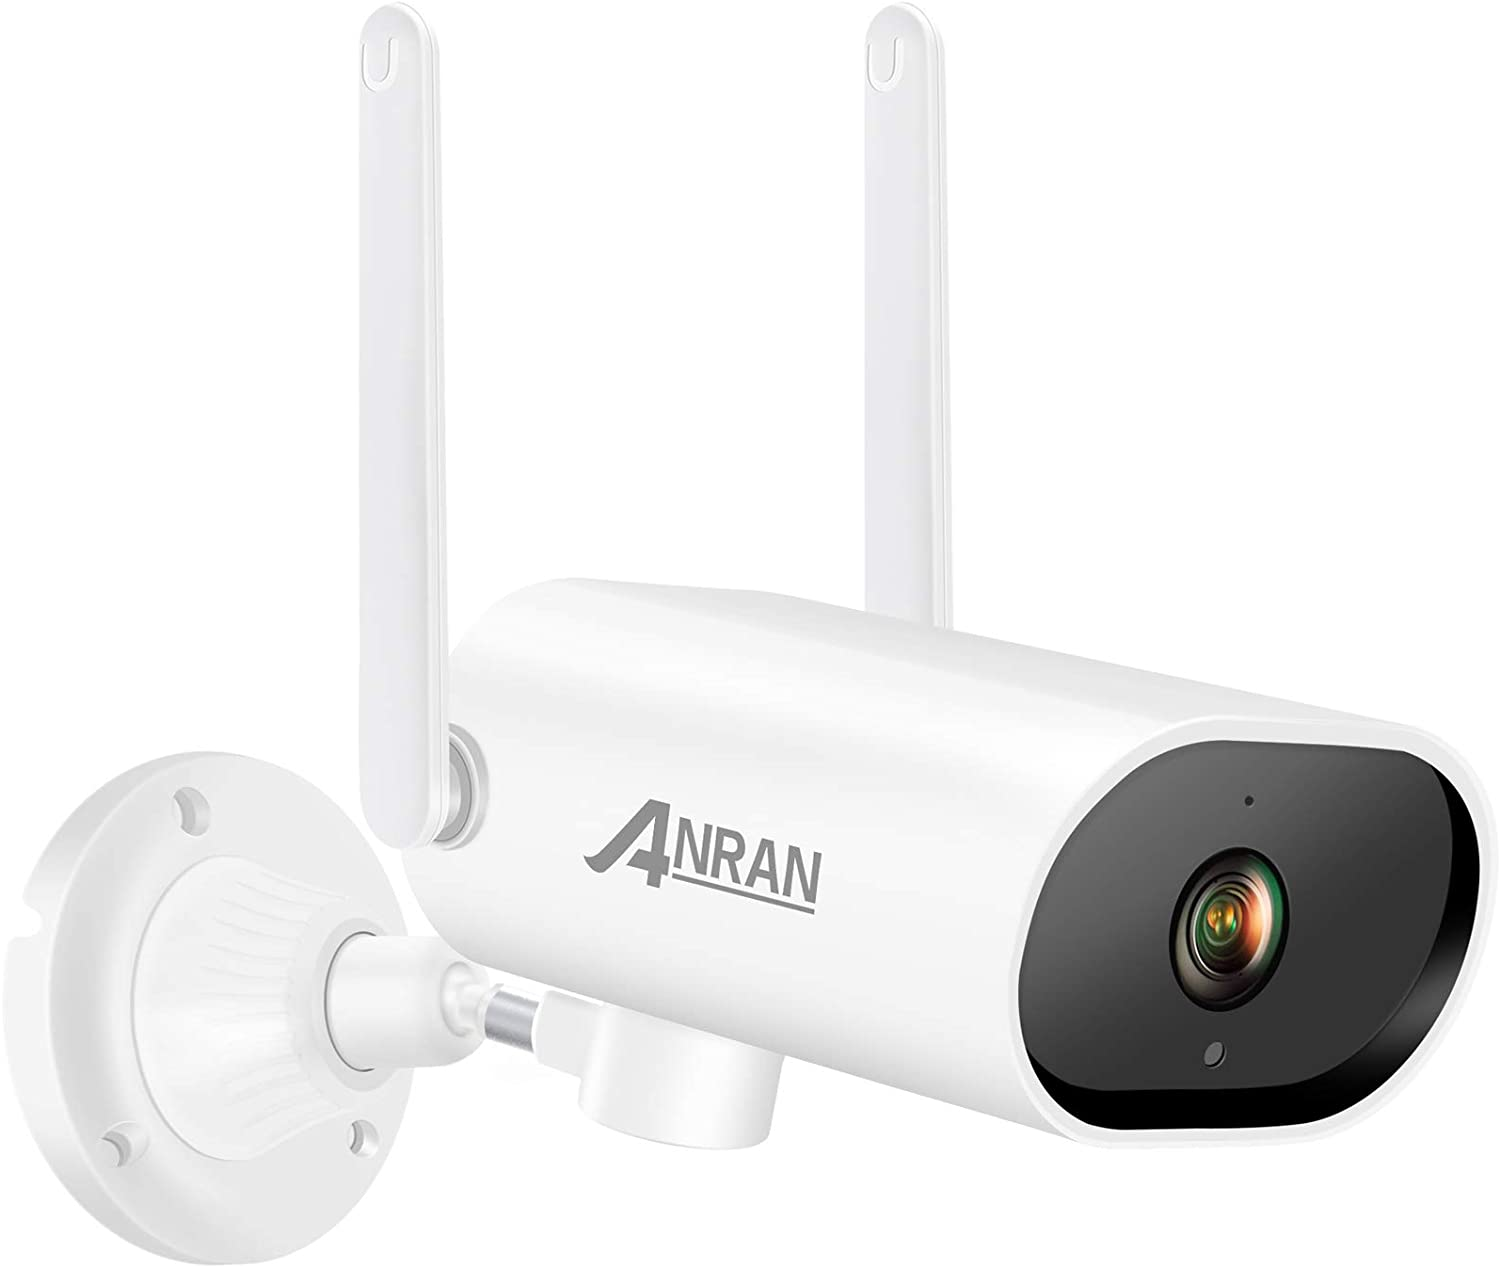 [Pan Tracking] ANRAN 1080P Full HD Home Wireless WiFi Camera for Home Surveillance Video System Indoor Outdoor Security Camera with Two Way Audio,Night Vision,Motion Alert,Remote Access, 32GB SD Card